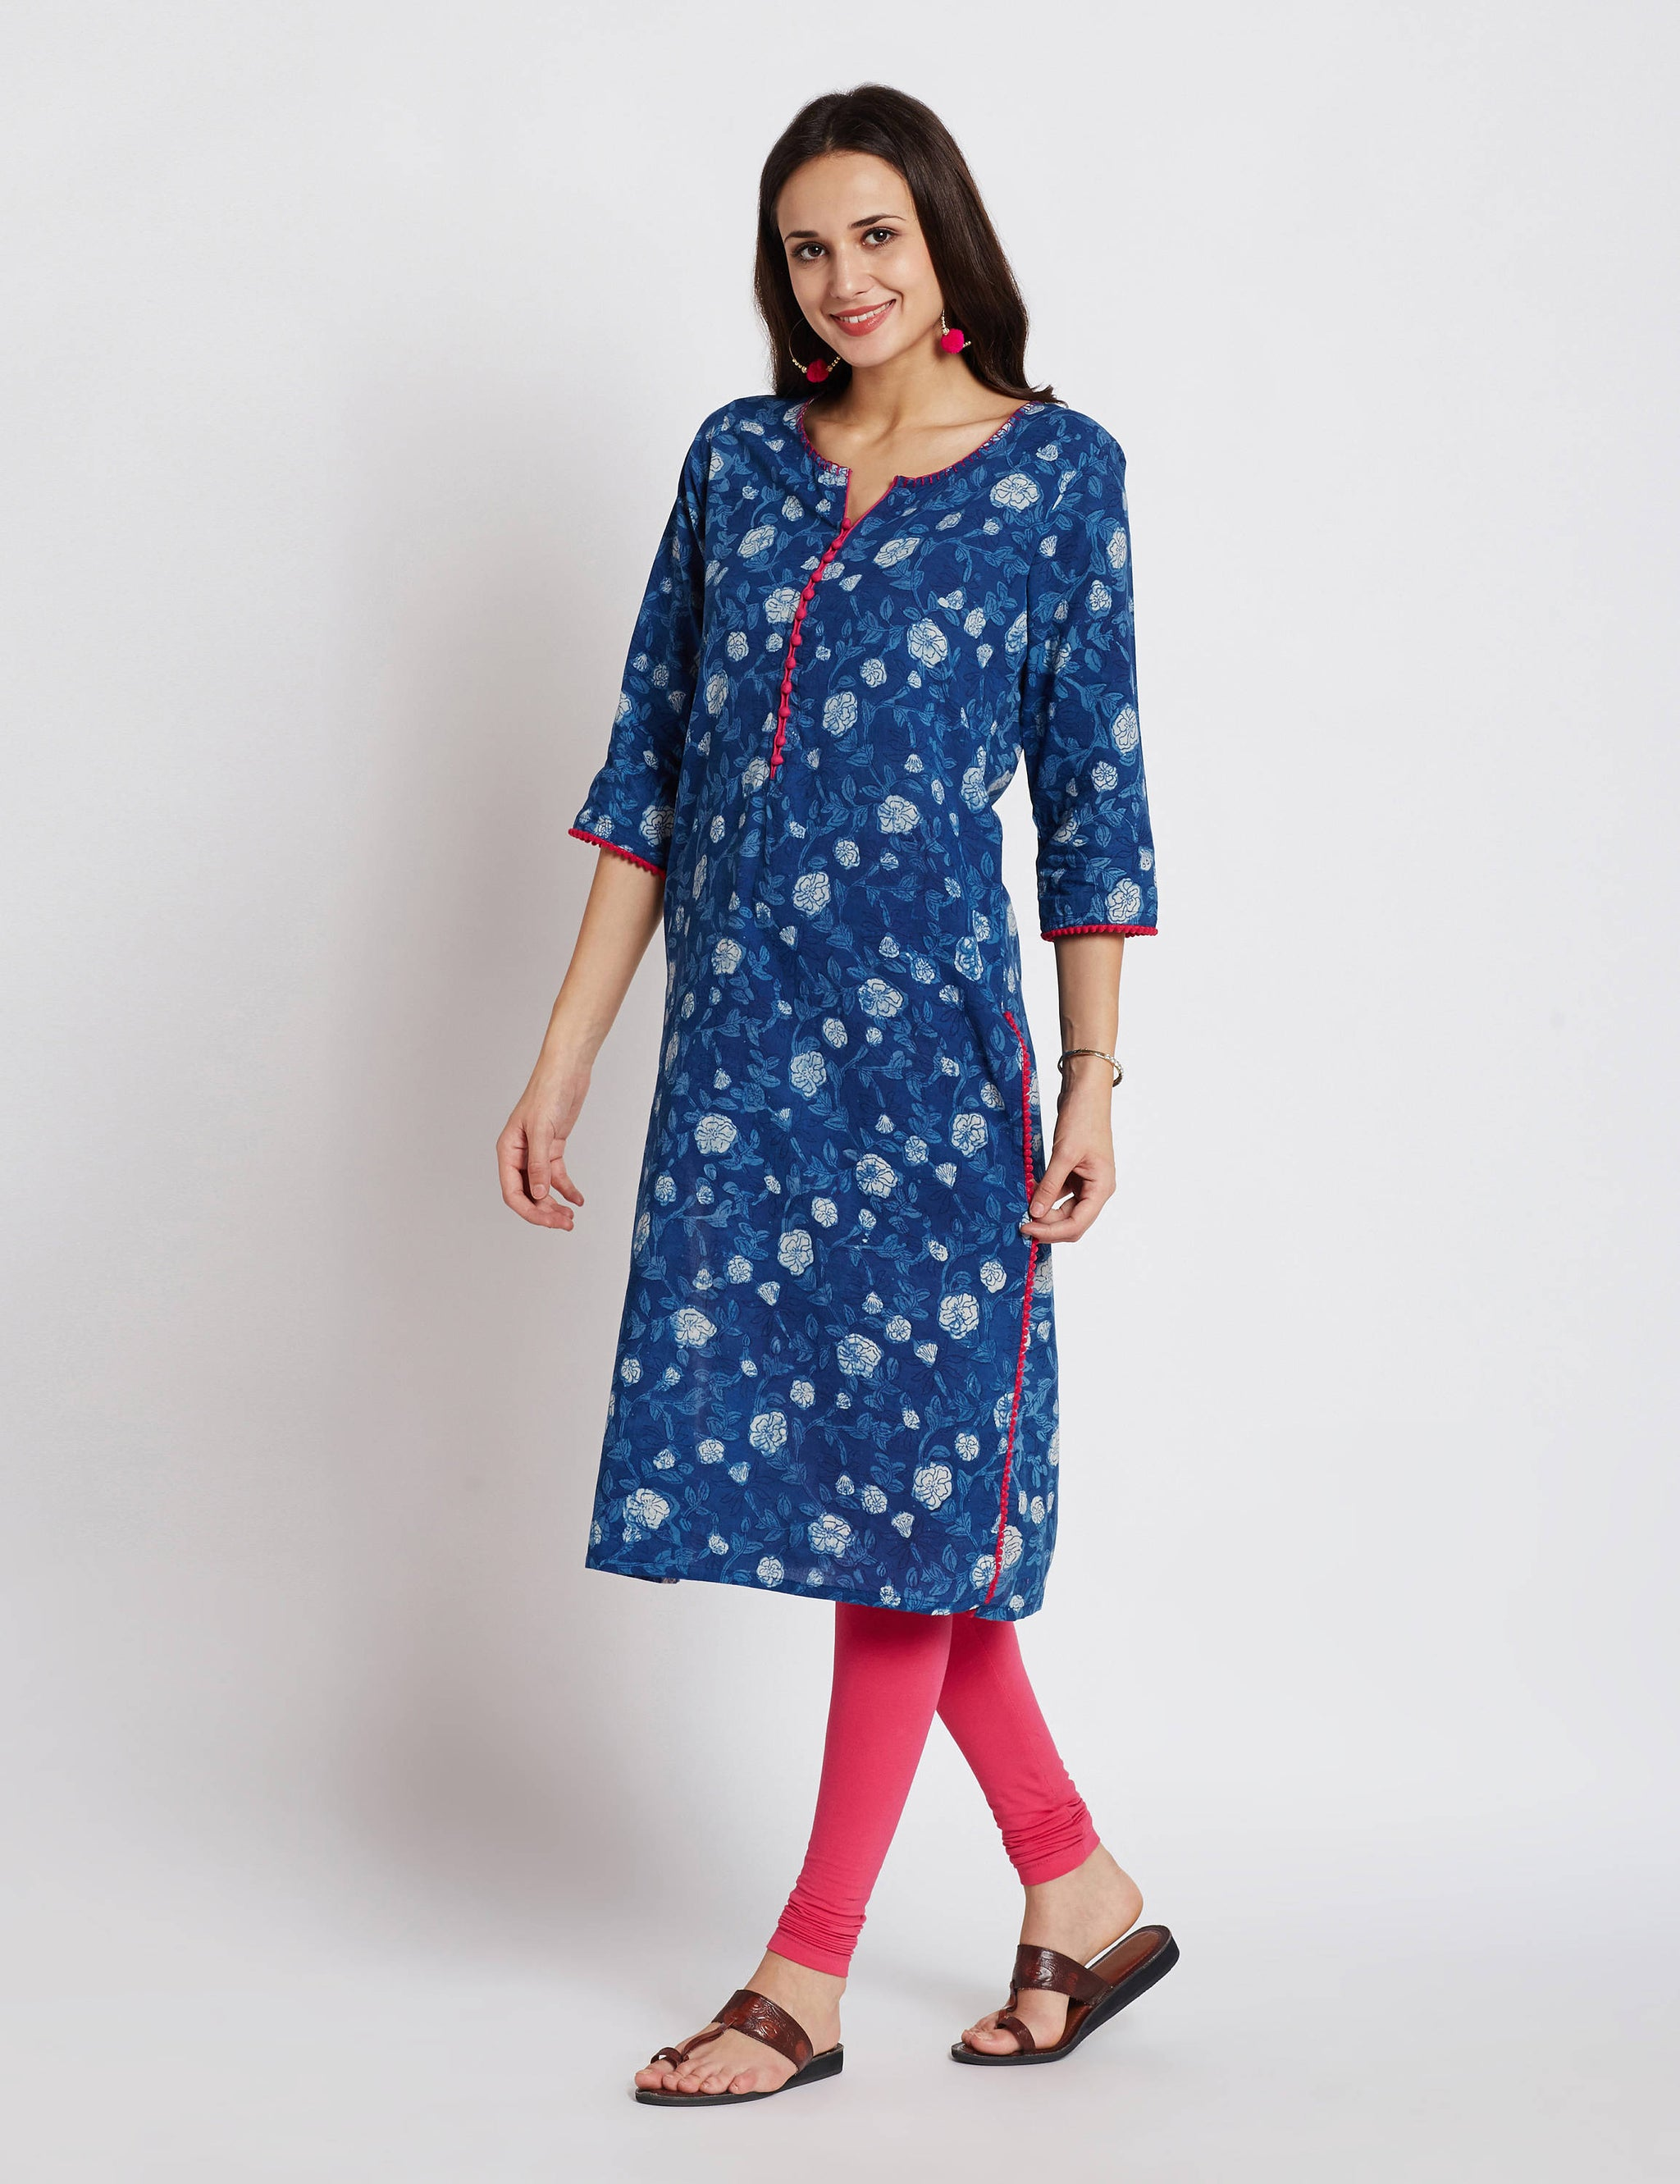 Indigo Hand block printed ethnic long Indian pocket kurta with hand embroidery & pompom lace